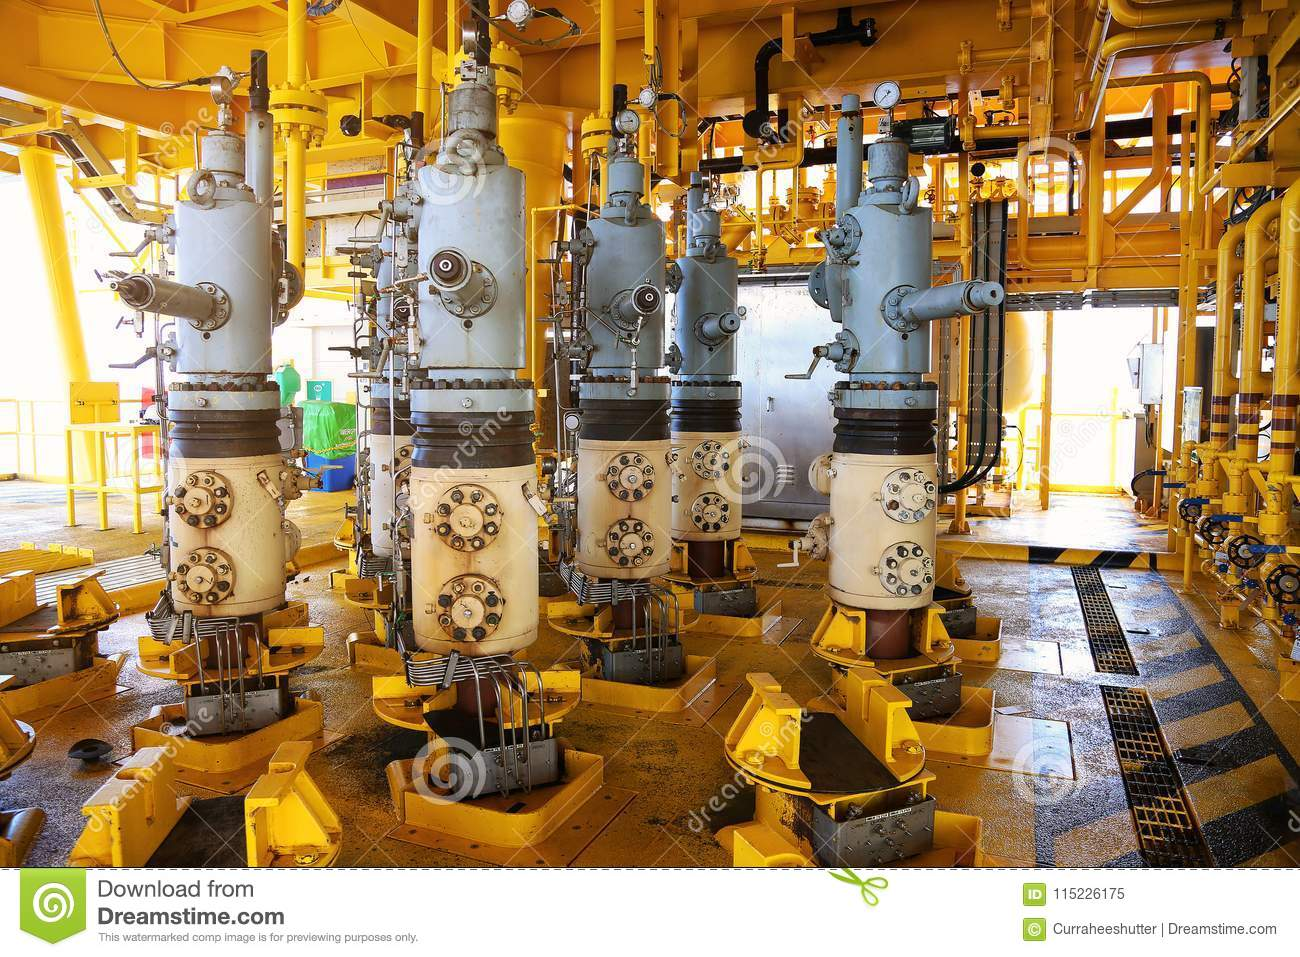 Valves manual in the process,Production process used manual valve to control  the system,